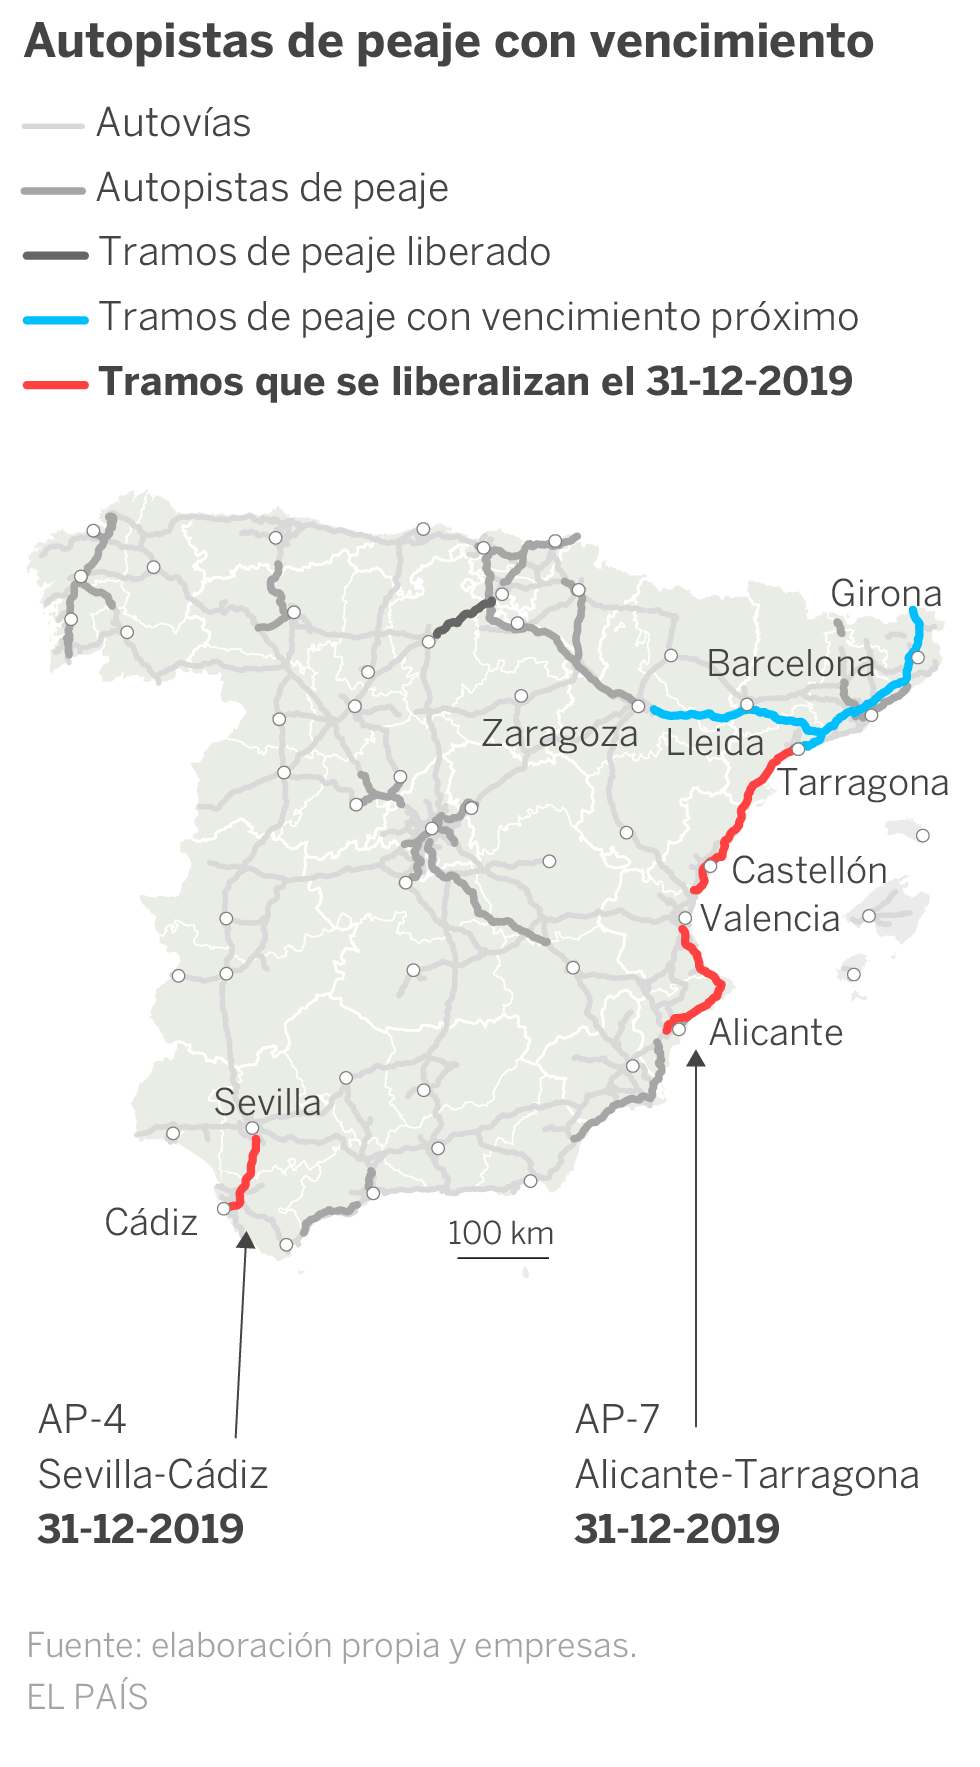 468 kilometers of free highways from Tarragona to Alicante and from Seville to Cádiz from New Year's Eve